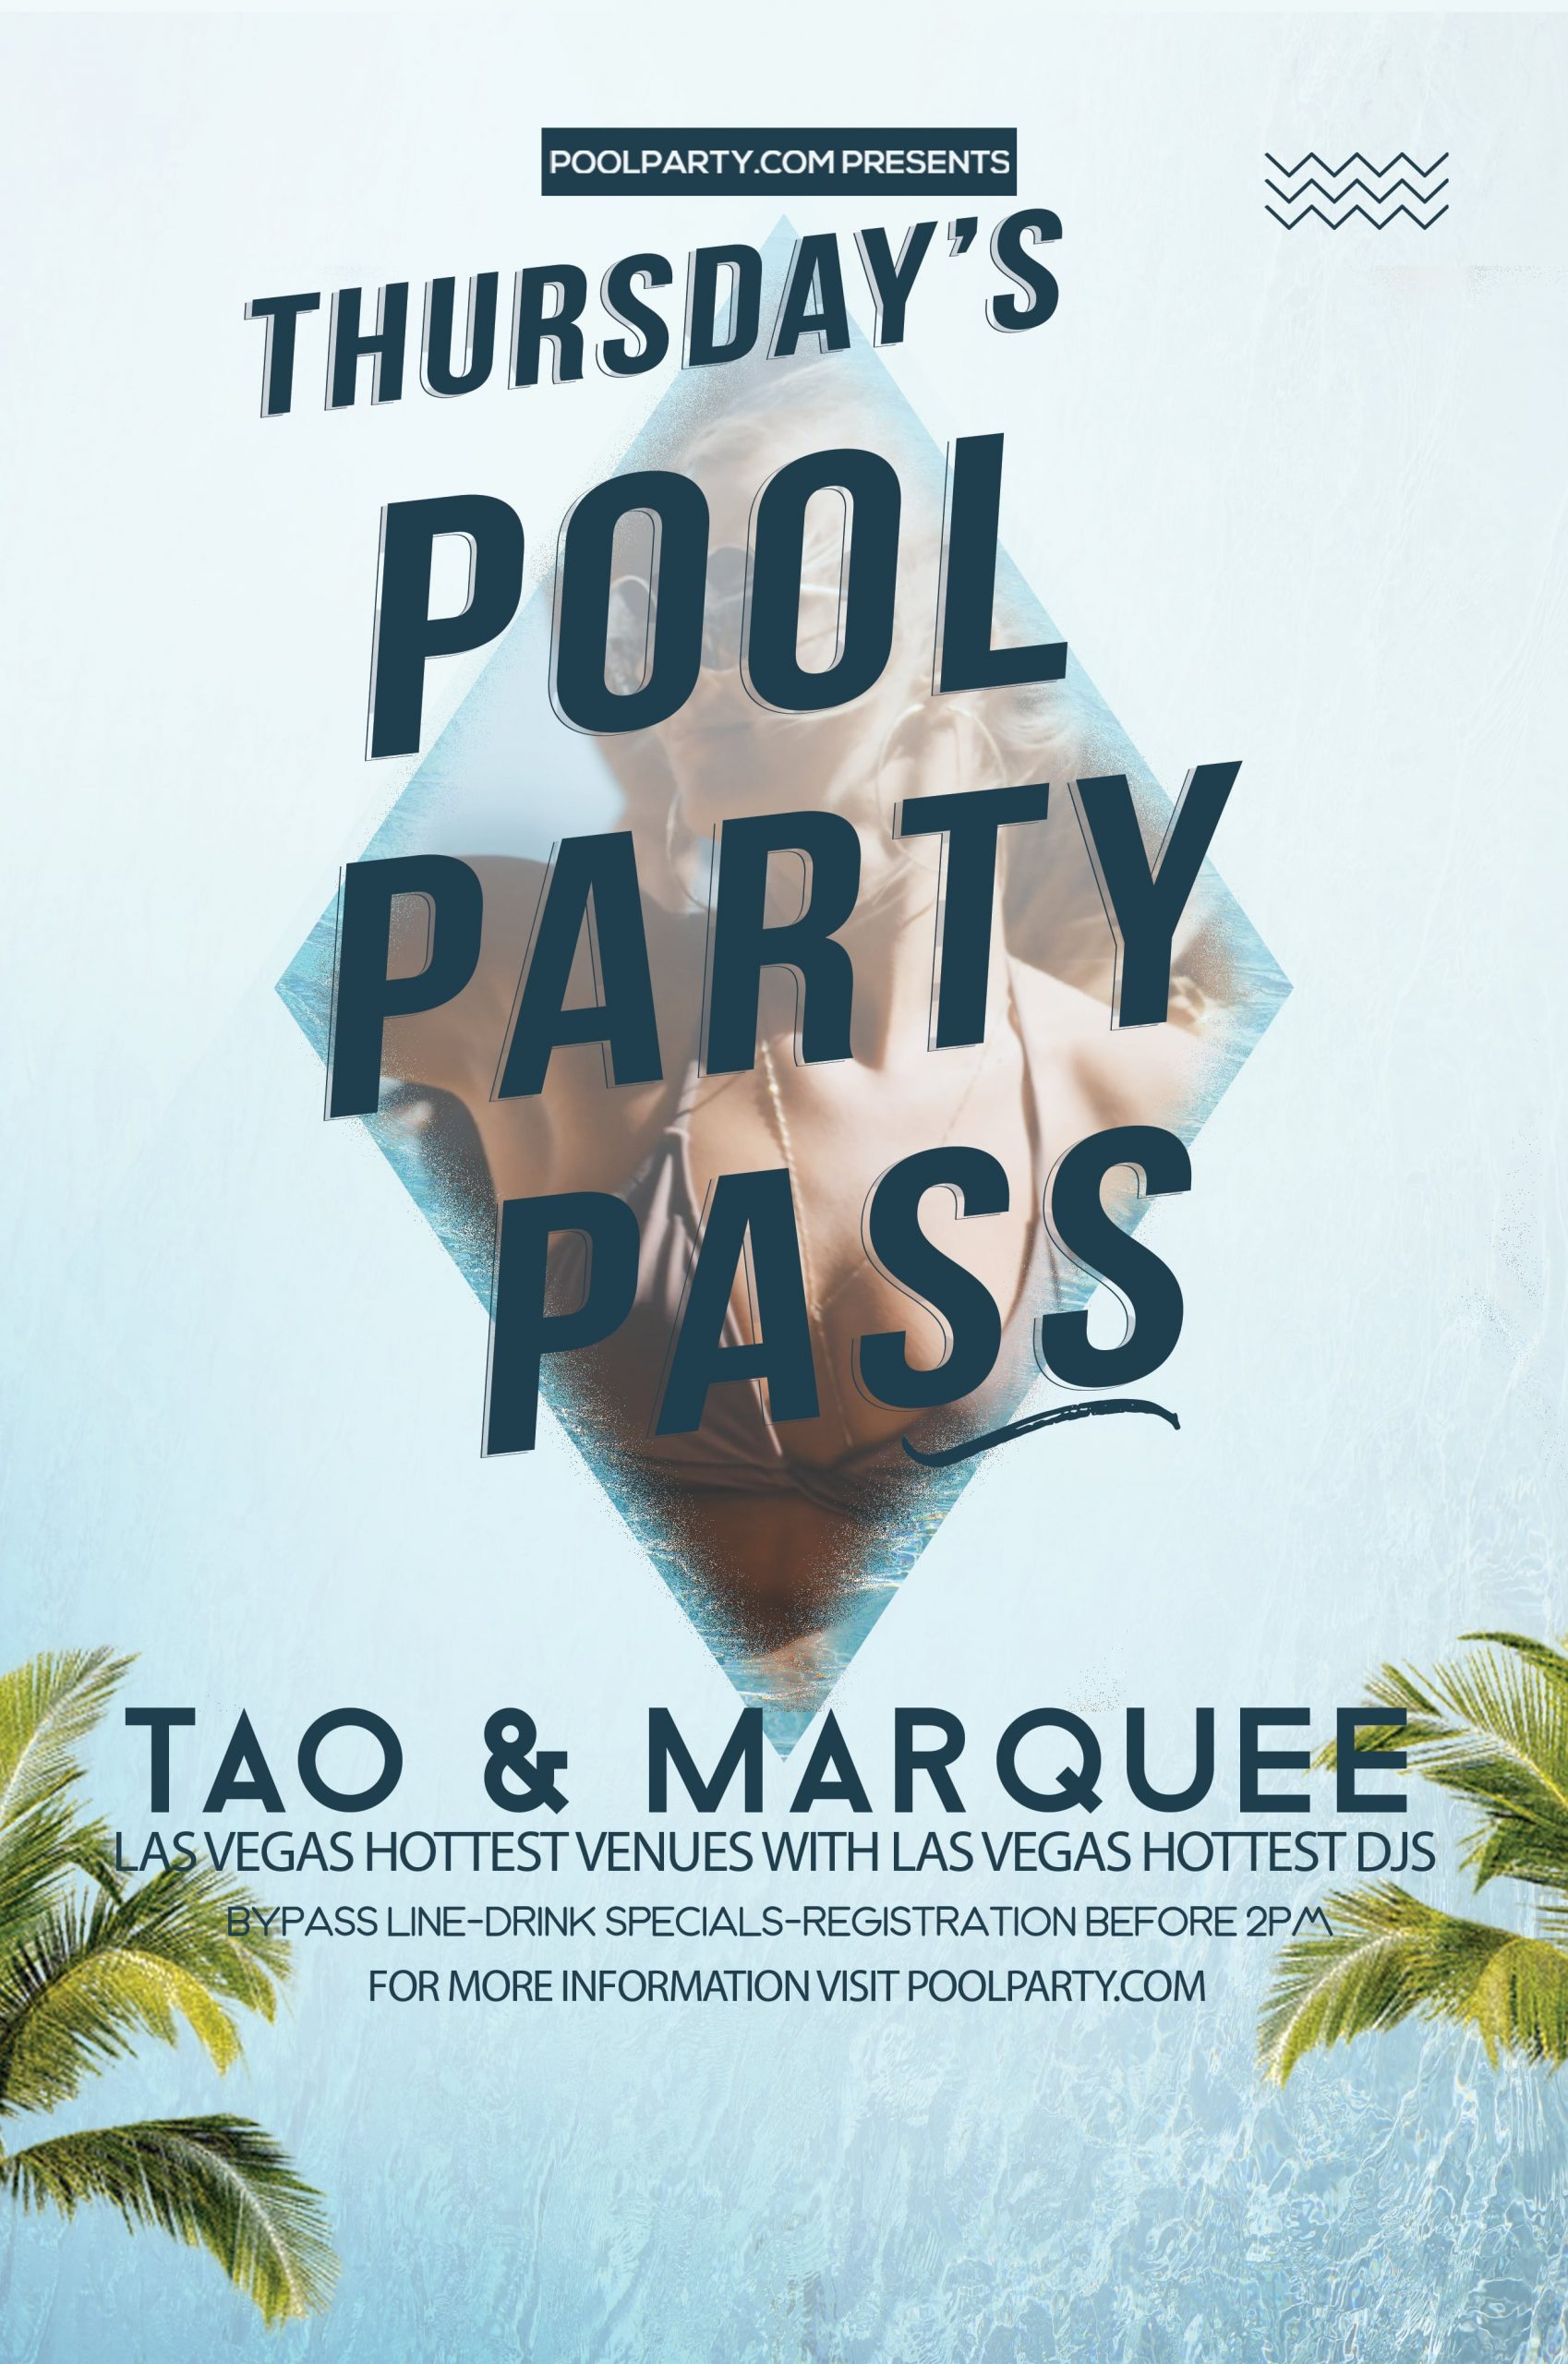 Thursday's Pool Party Pass (August 15th)*NOW INCLUDING FREE ADMISSION TO TAO NIGHTCLUB*